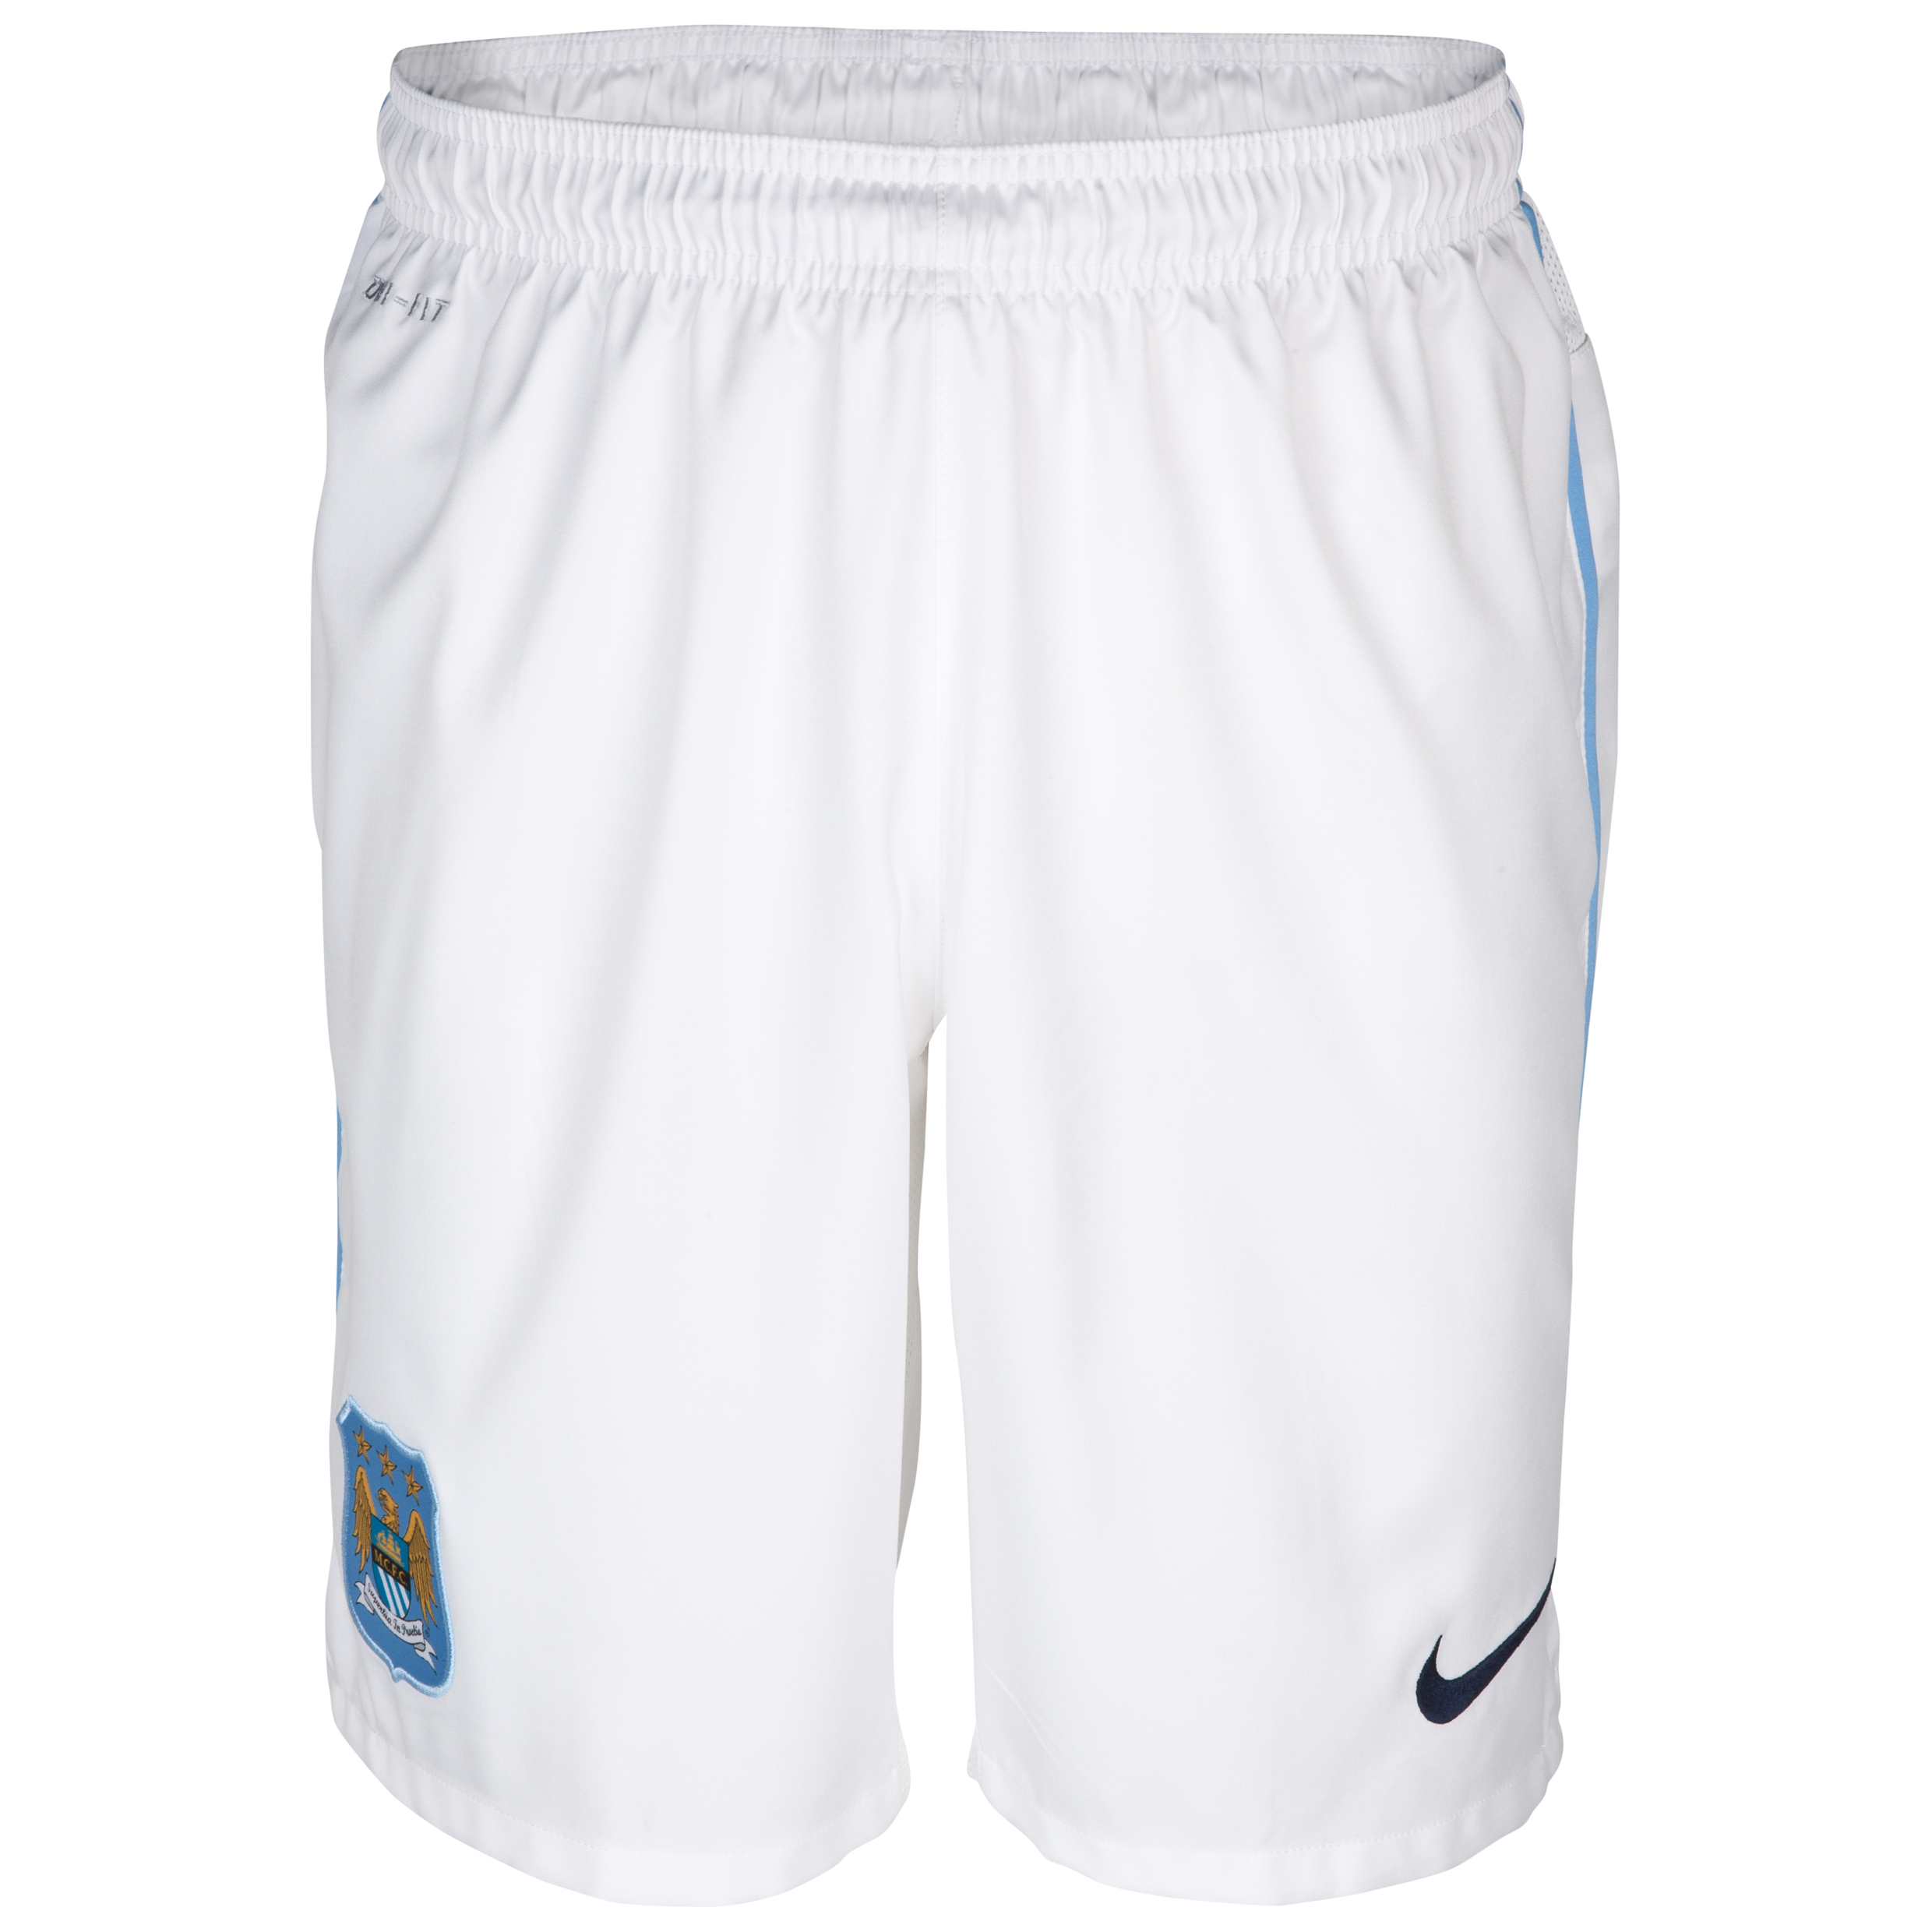 Manchester City Home Short 2013/14